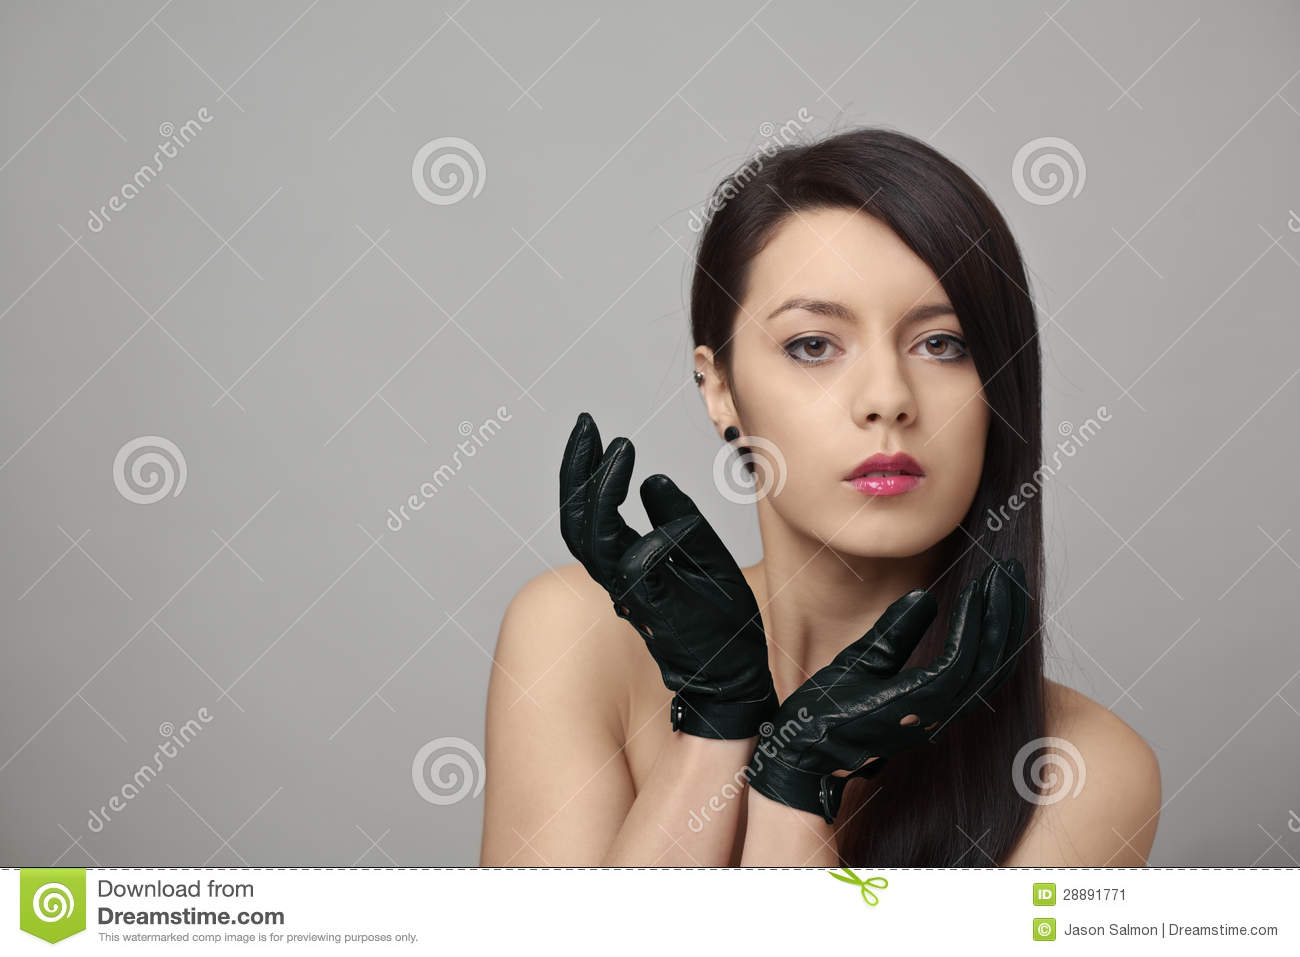 The girl with the driving gloves